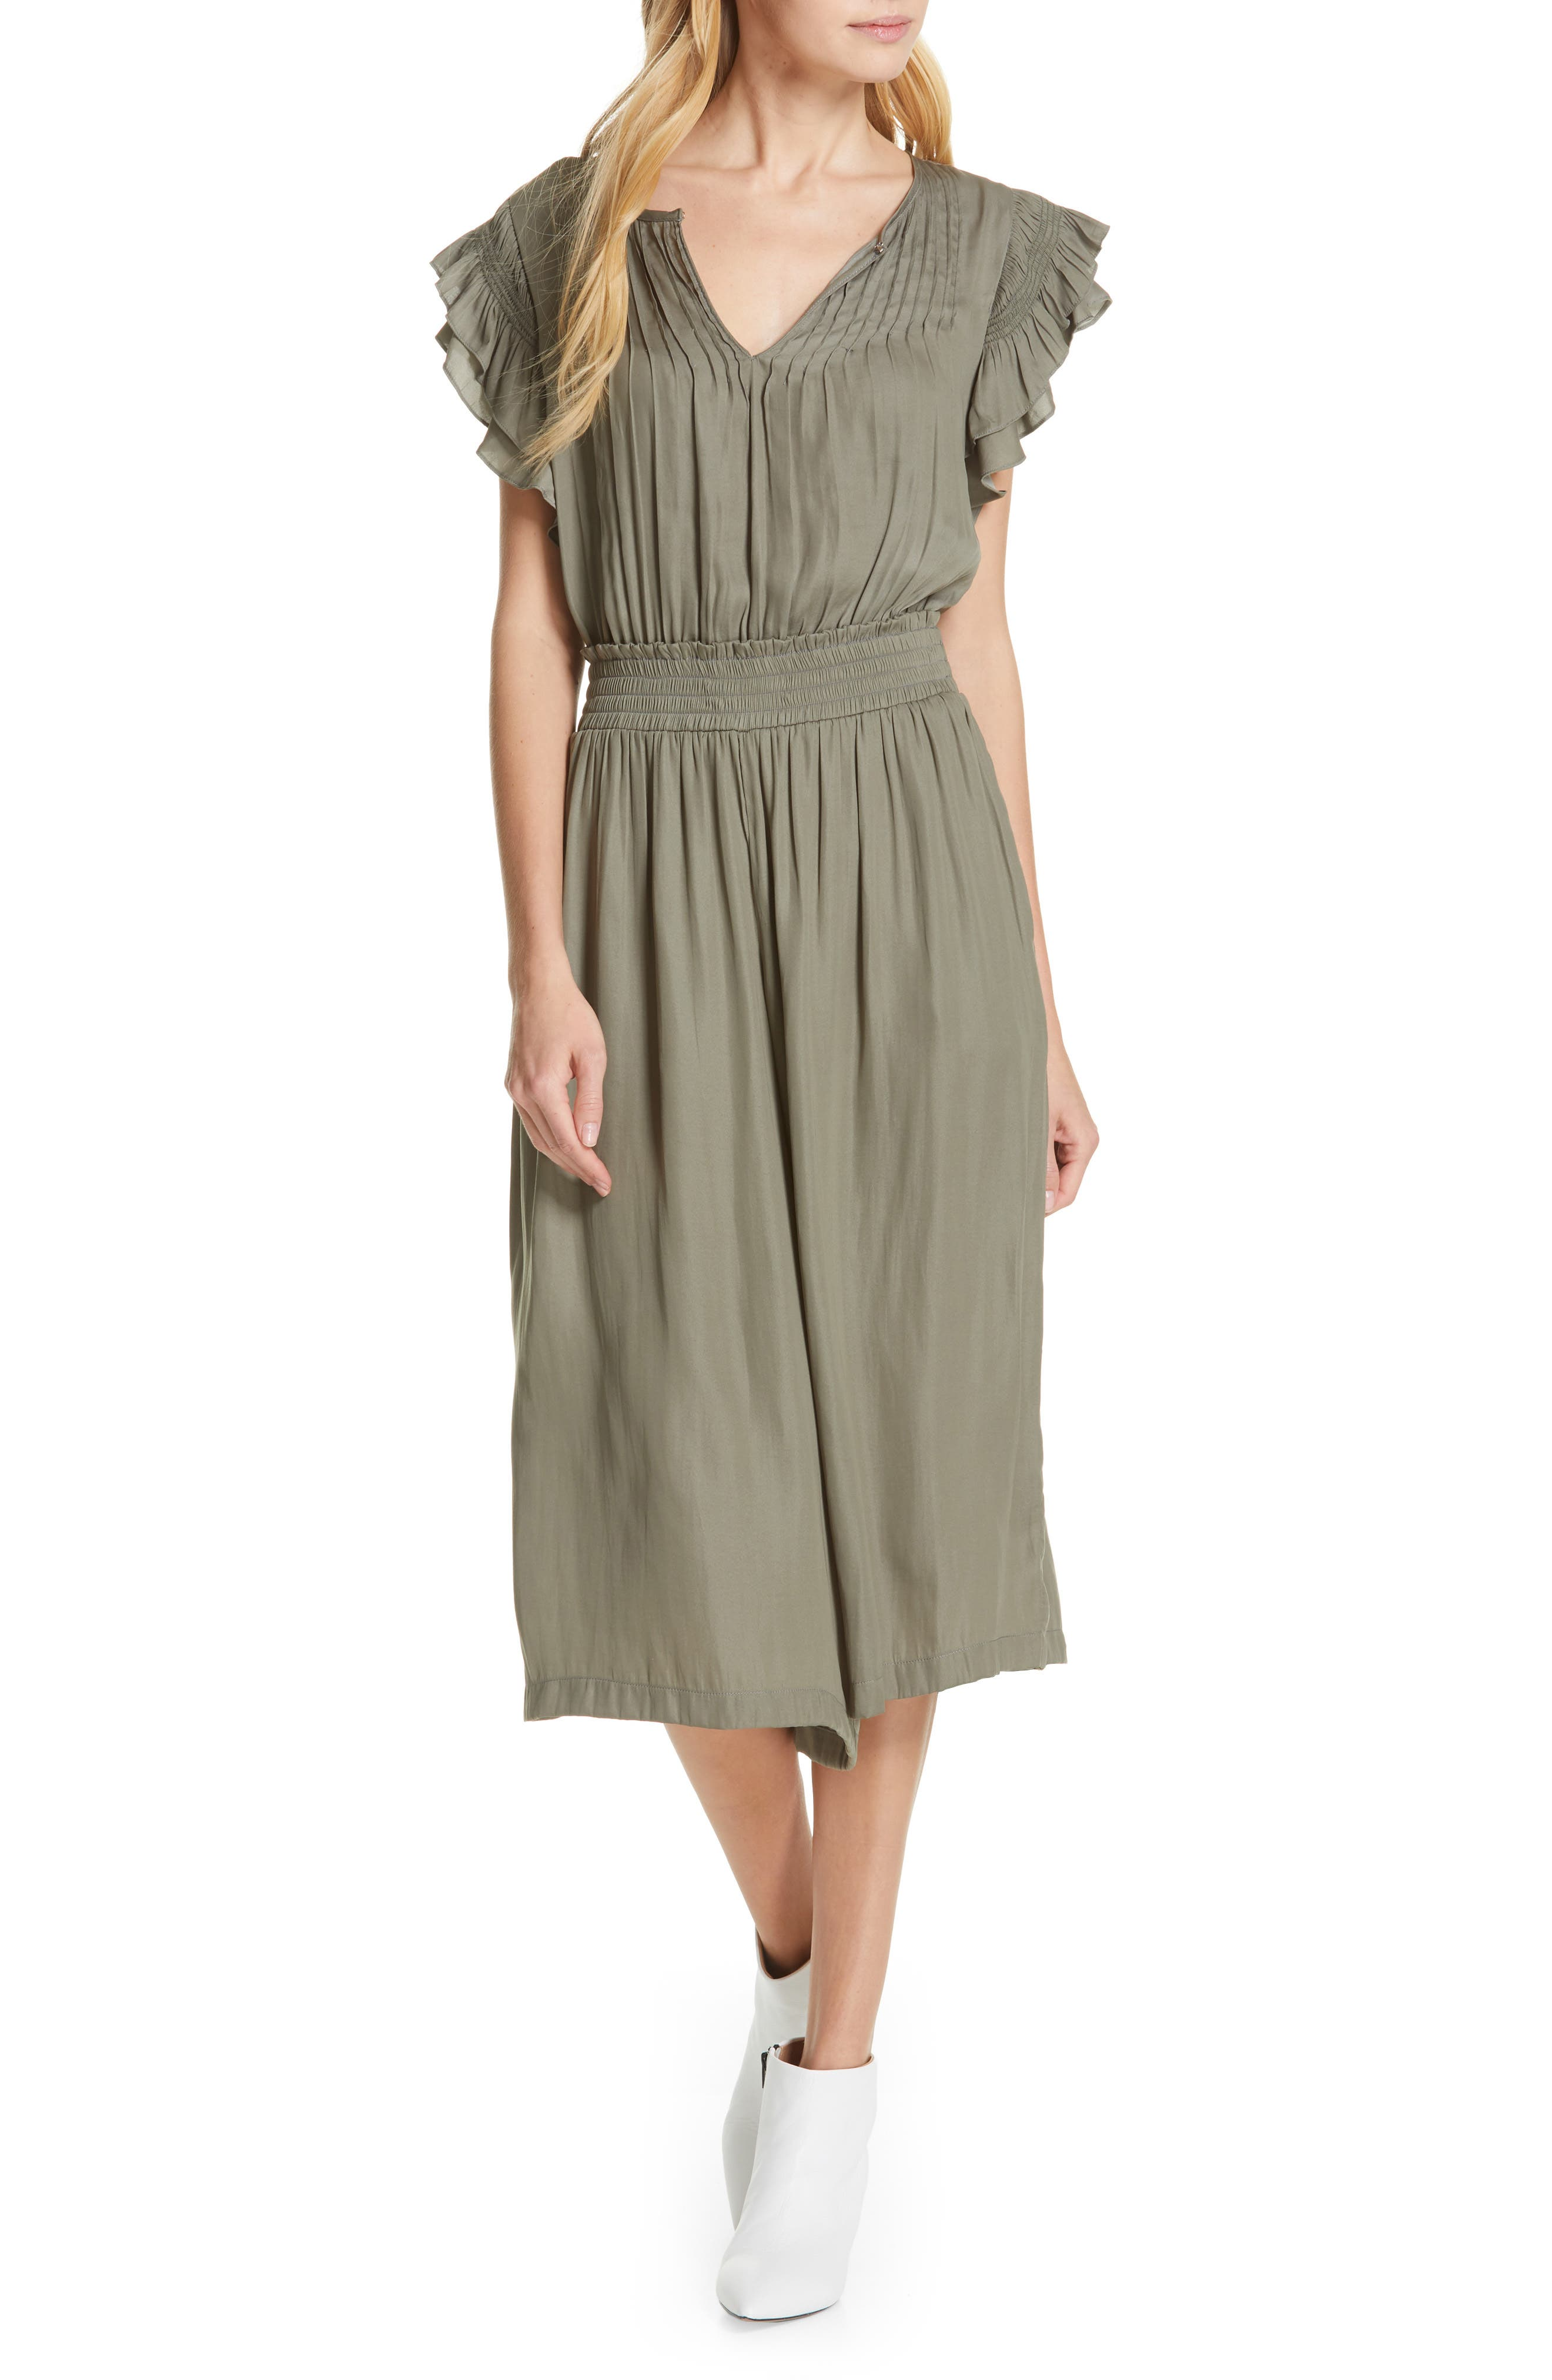 DOLAN, Carrie Pintucked Jumpsuit, Main thumbnail 1, color, SAGE